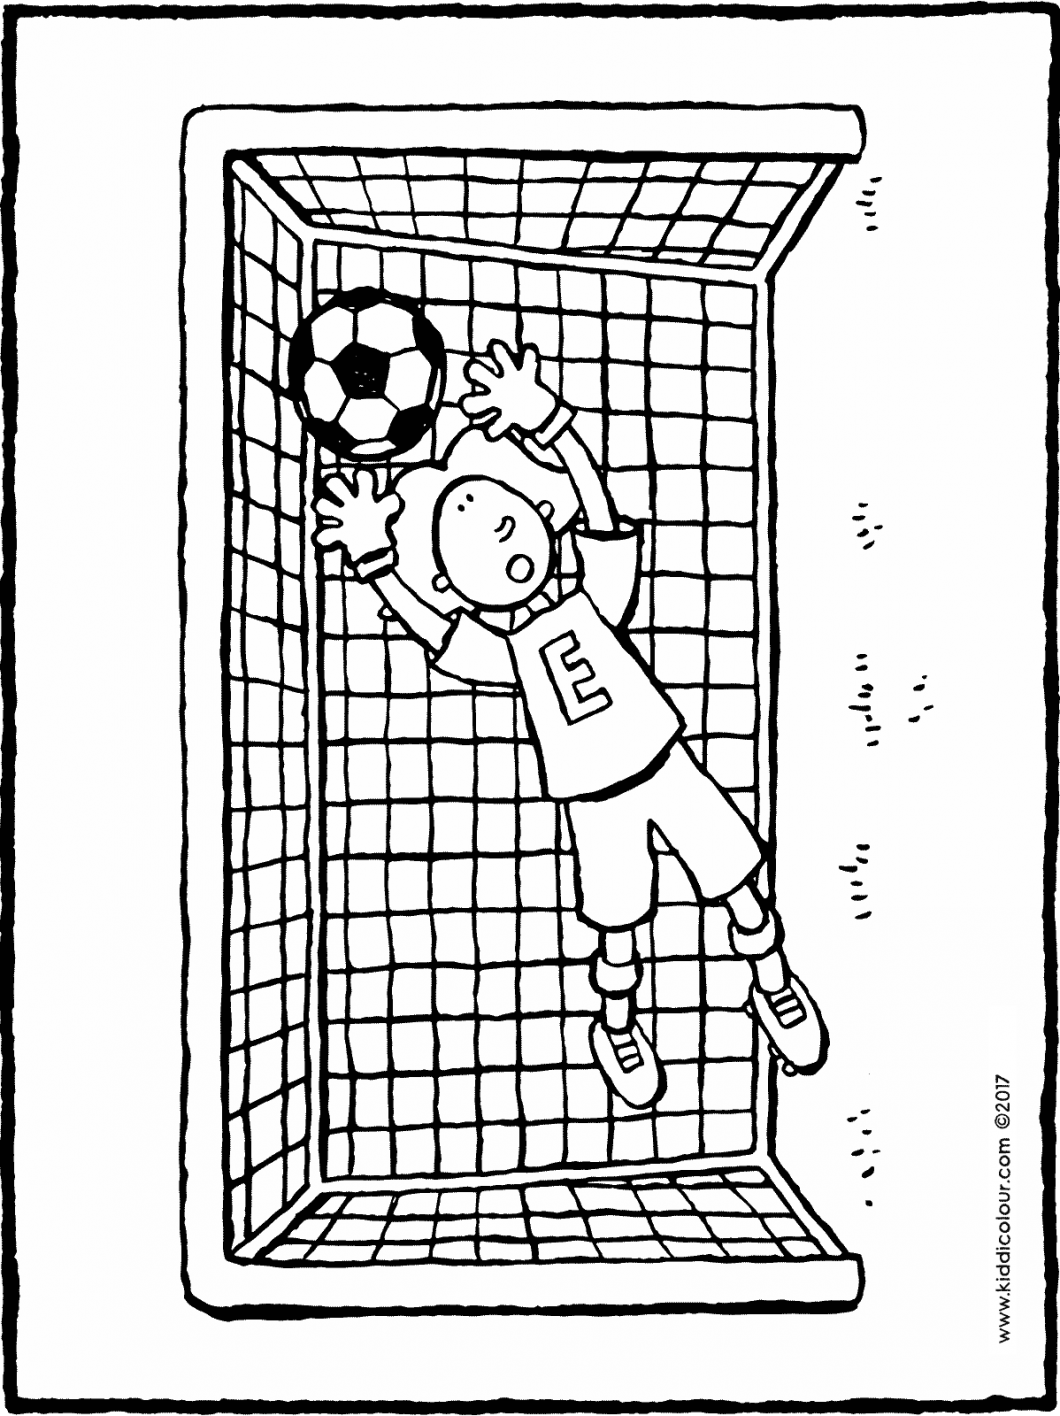 Emma in goal colouring page drawing picture 01H